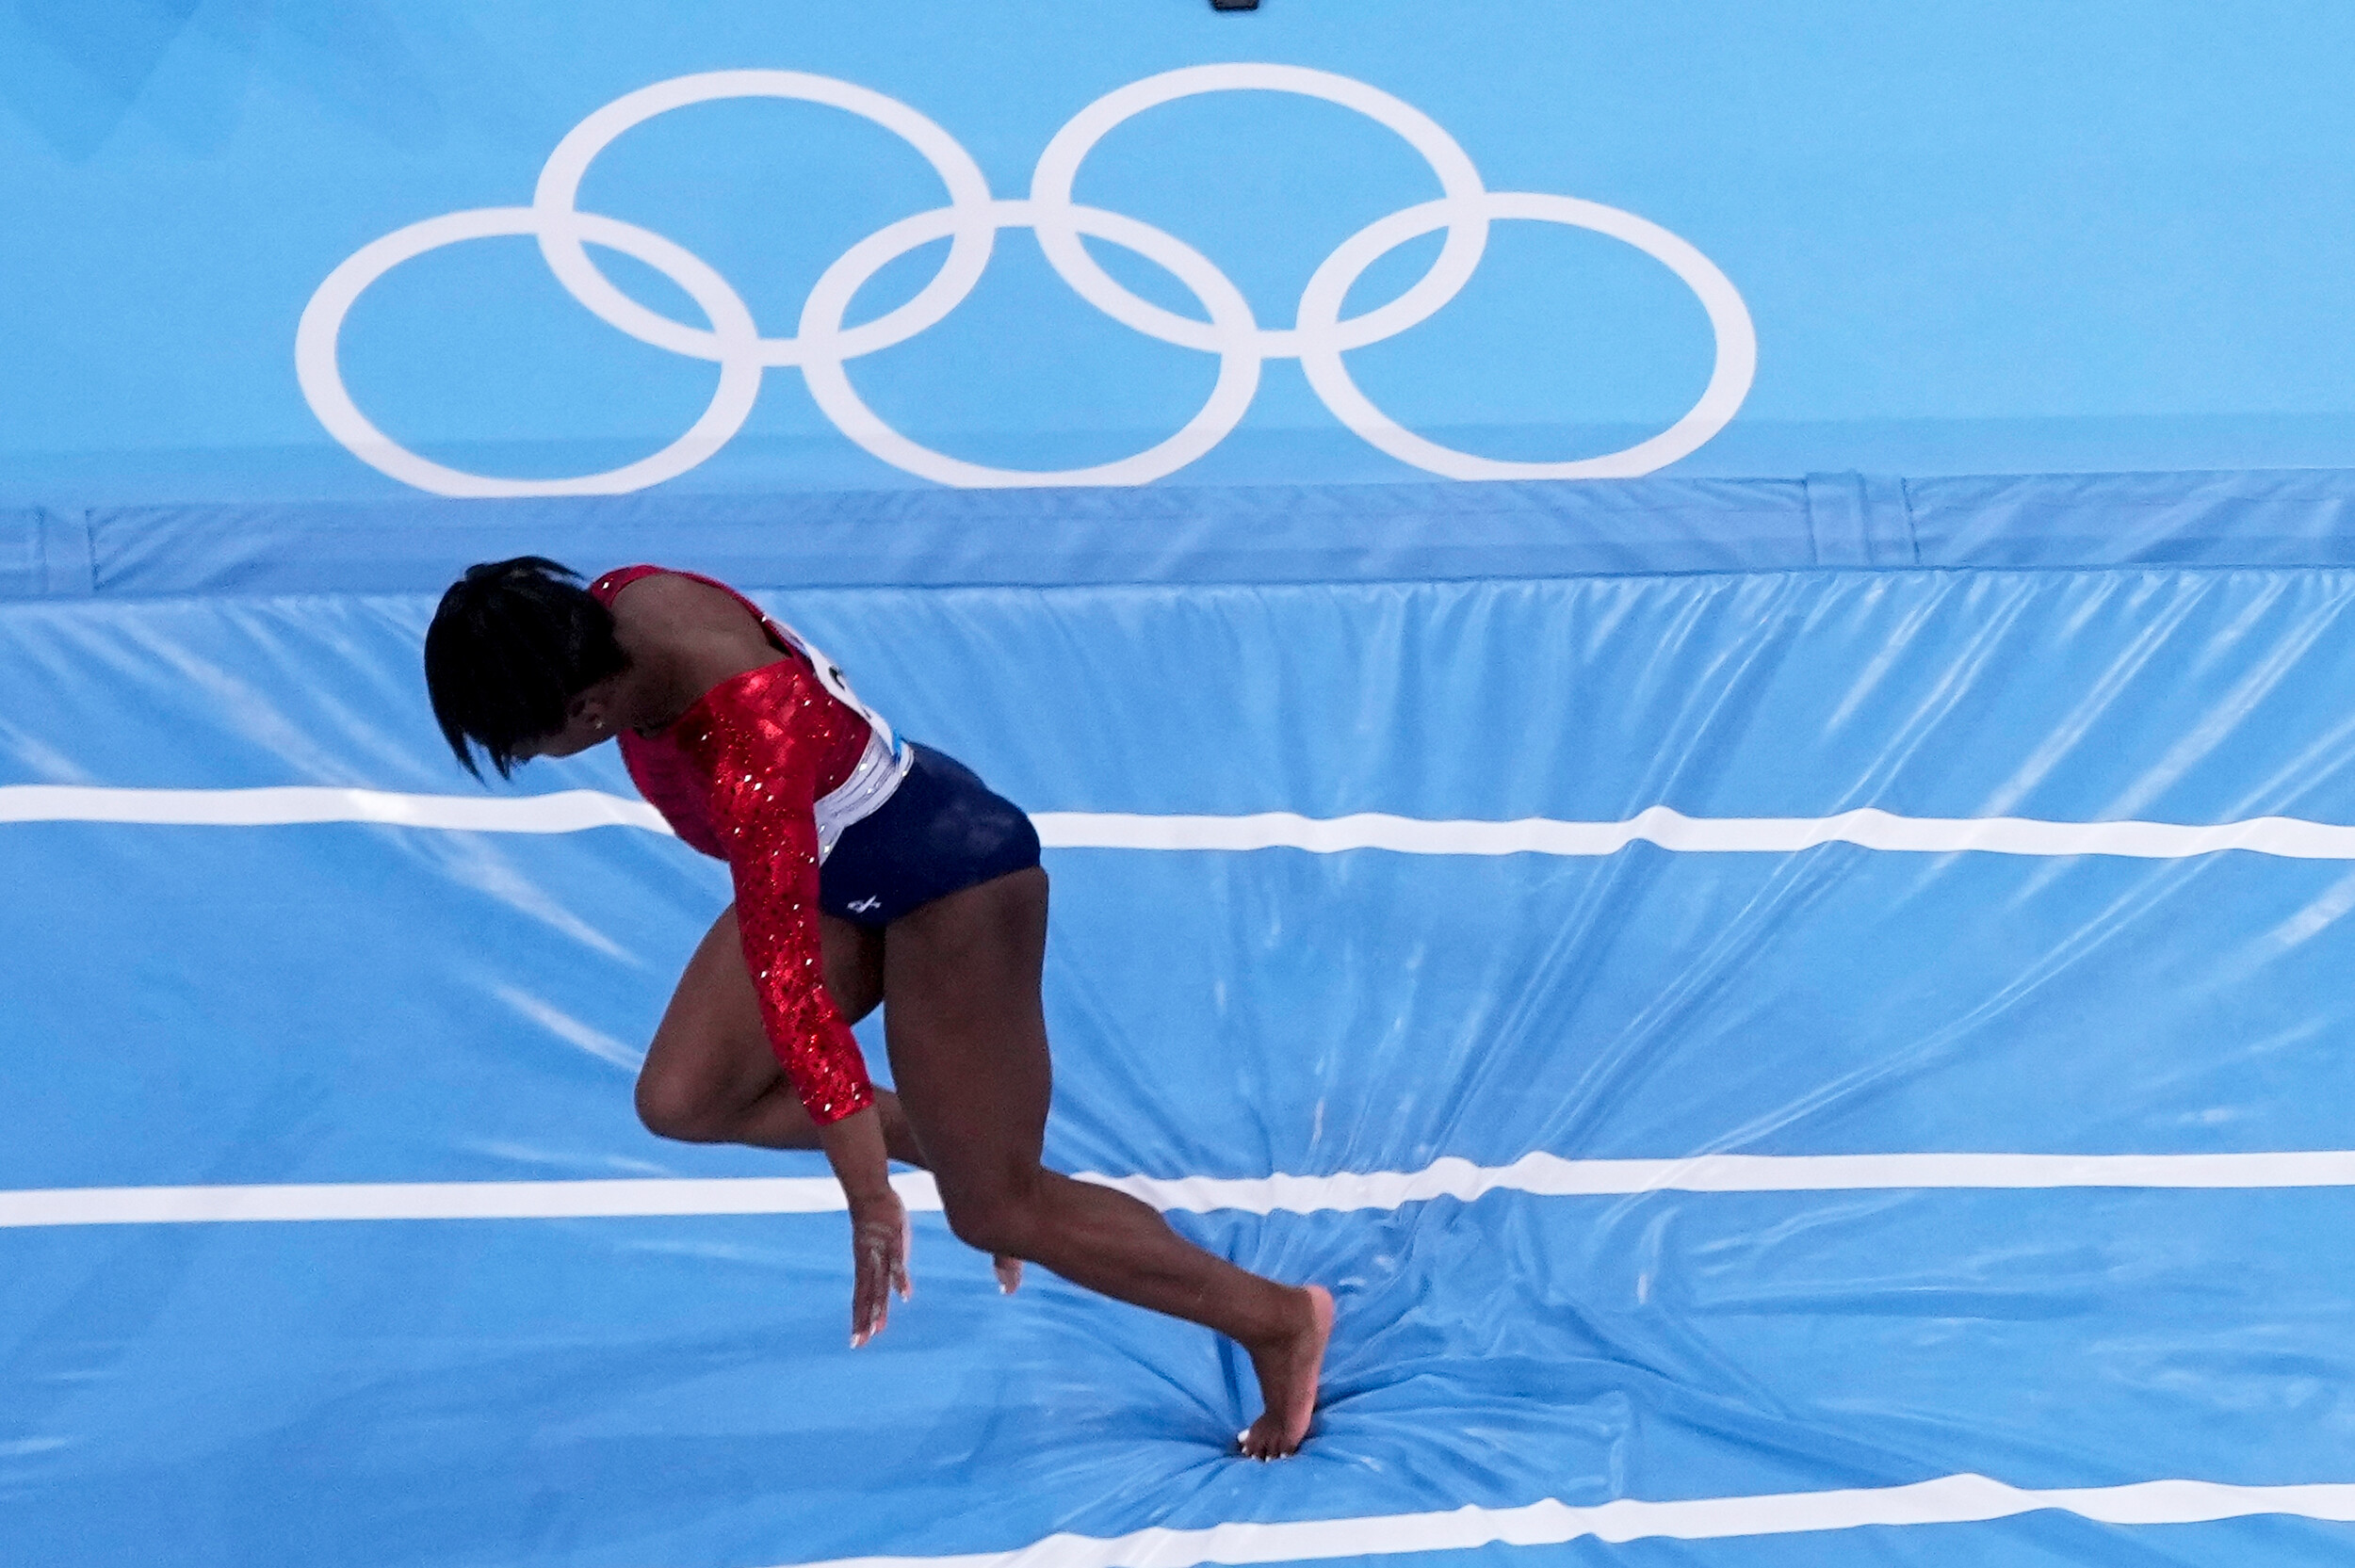 Simone Biles says she still has the 'twisties' and it's impacting her on the 4 individual events